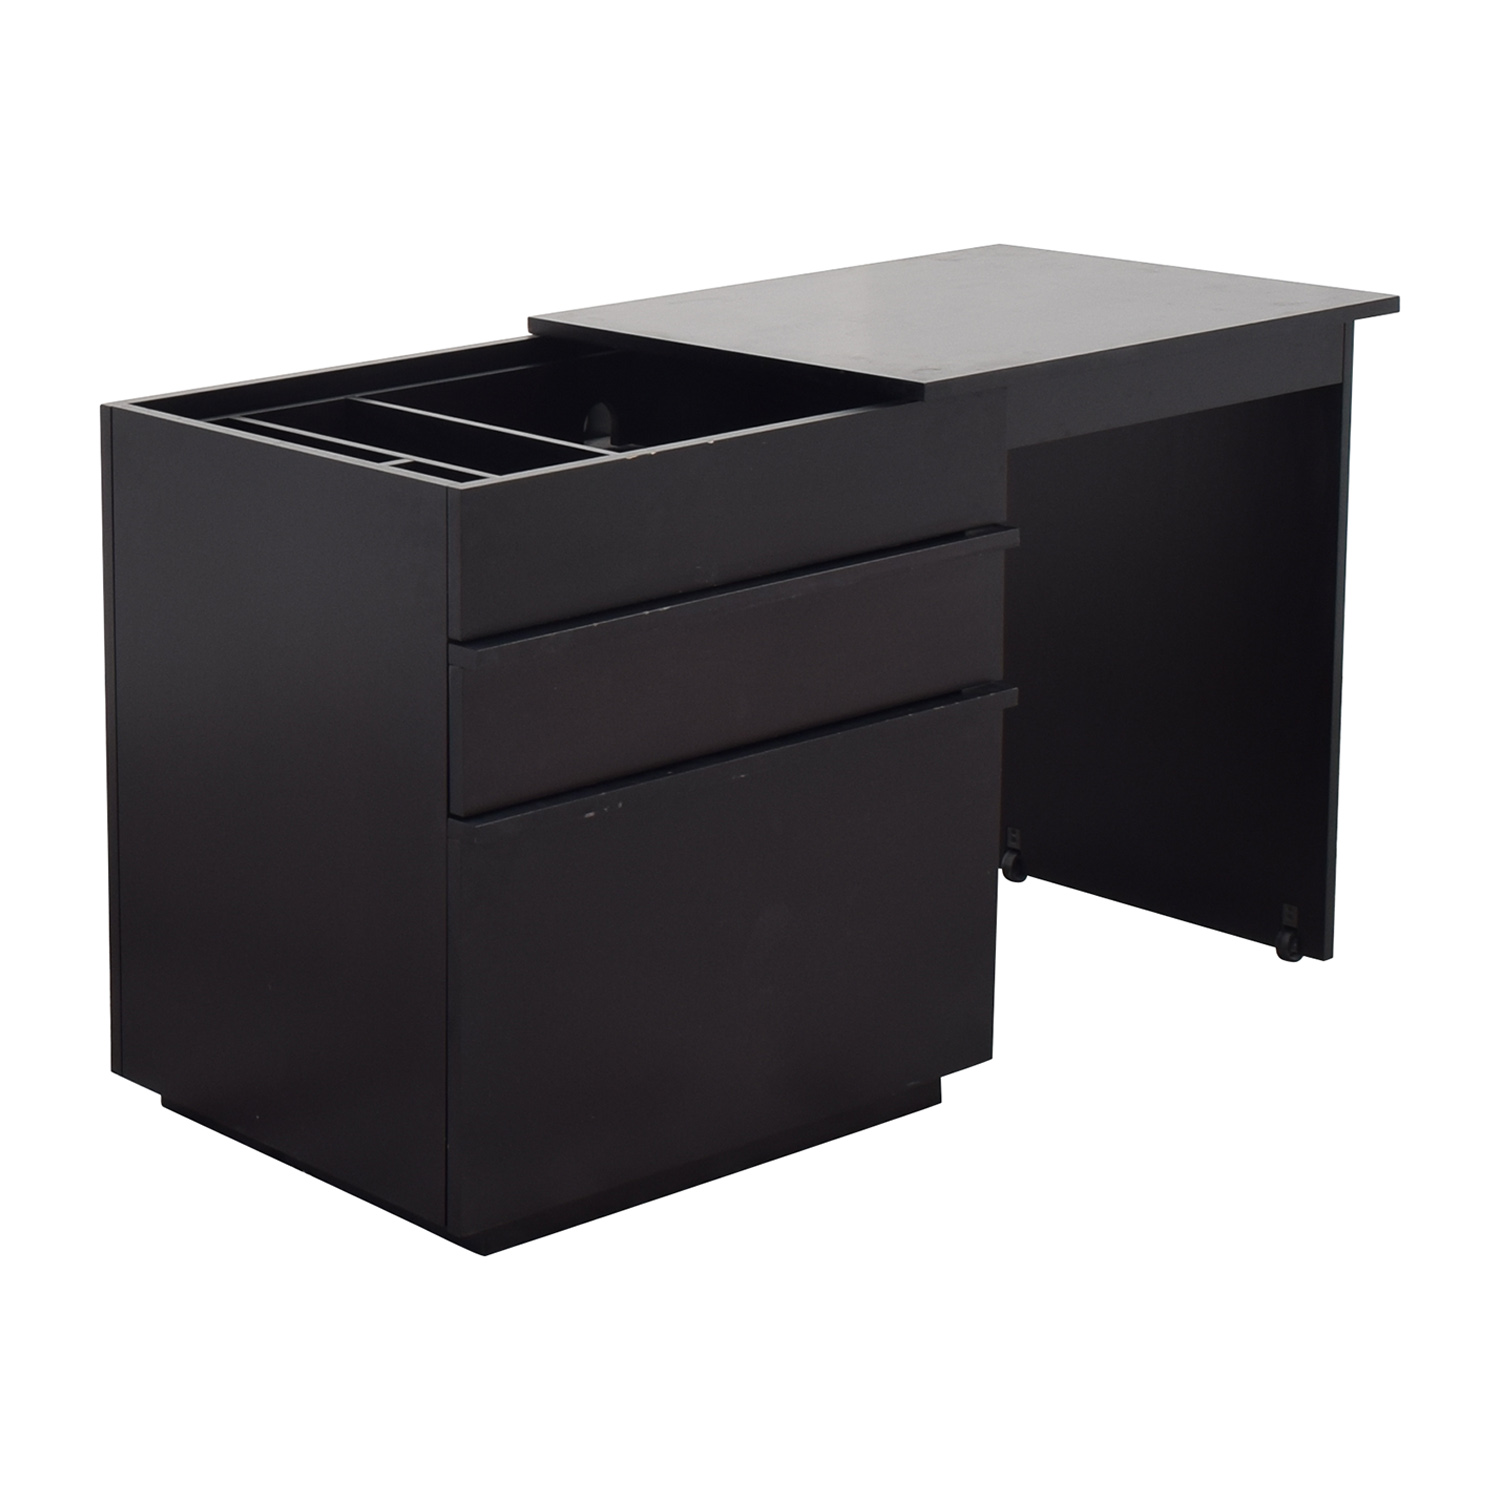 shop Crate & Barrel Roll Out Desk Crate & Barrel